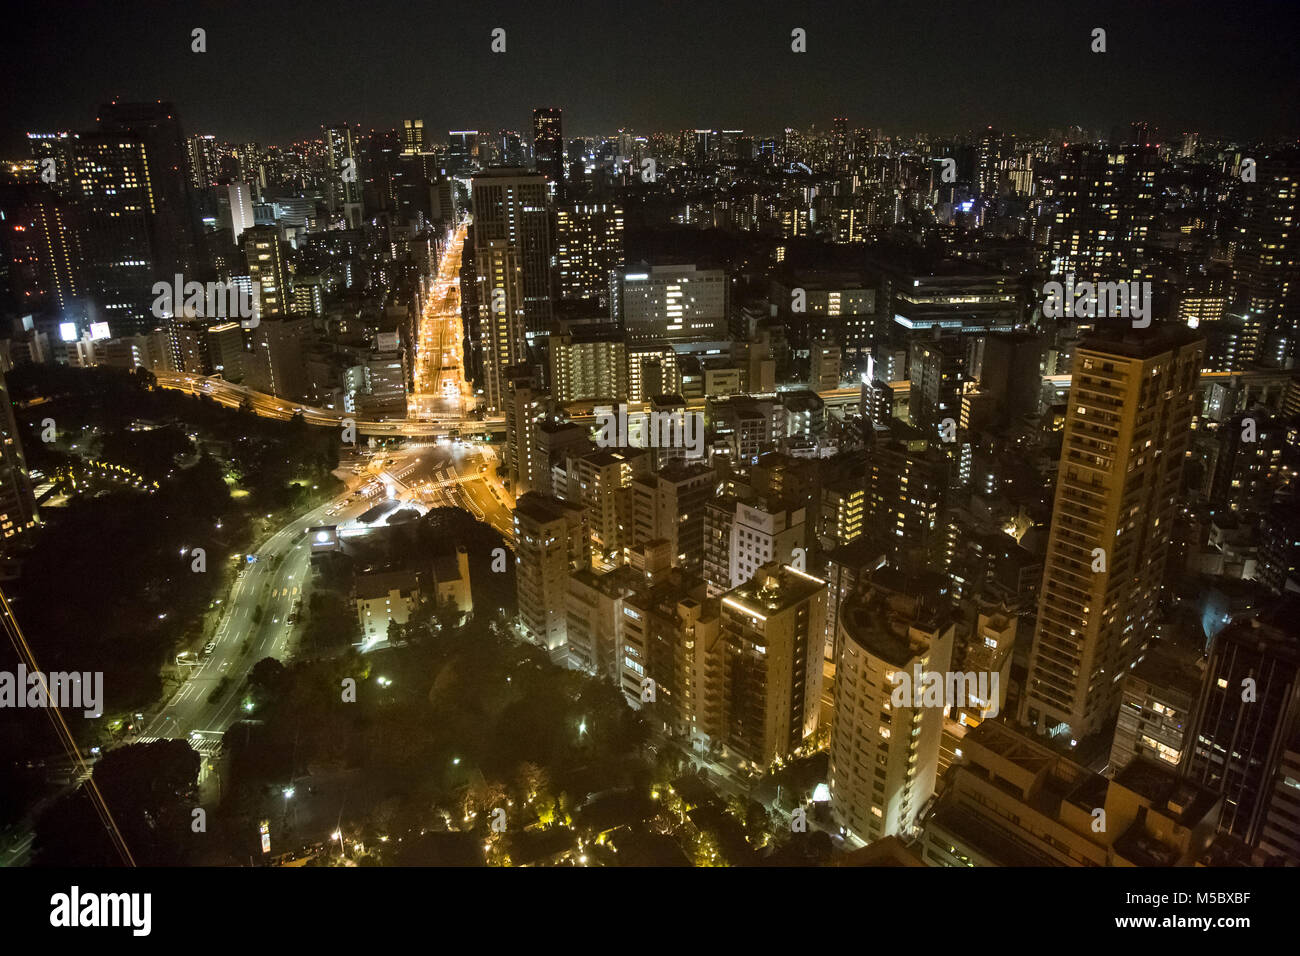 Views of the Tokyo cityscape and skyline at night, from atop Tokyo Tower in Tokyo. - Stock Image